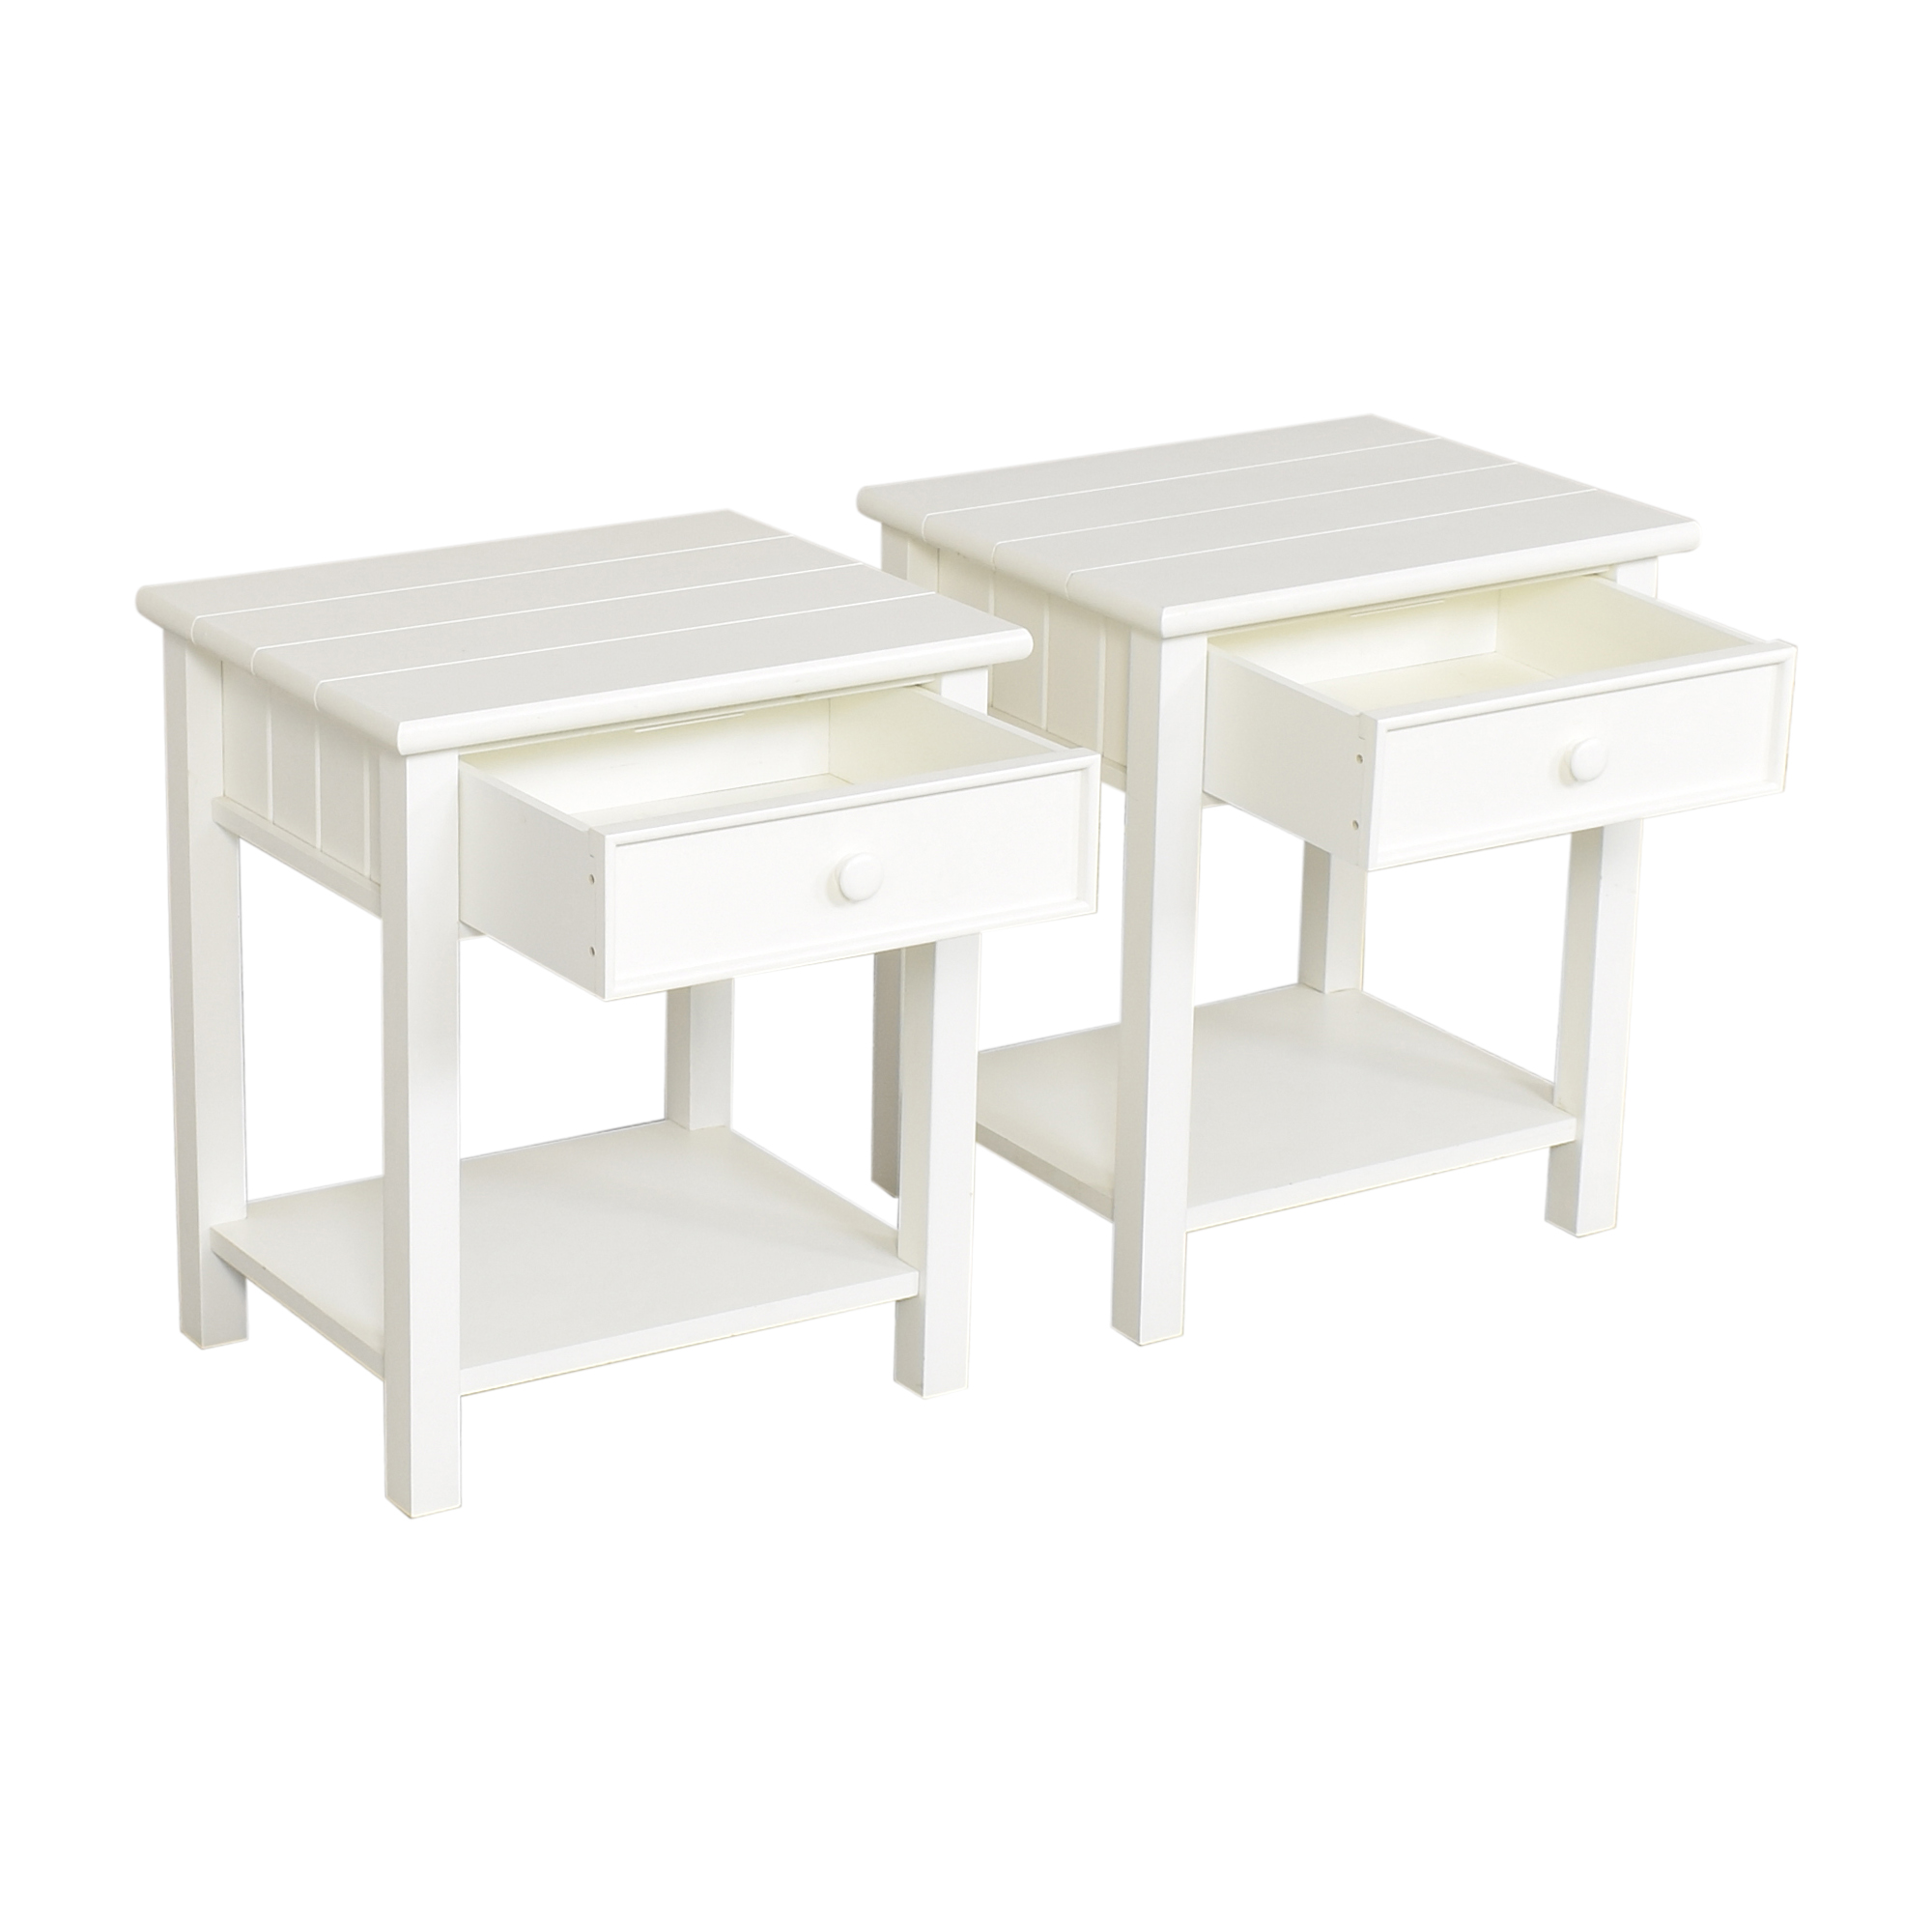 Pottery Barn Pottery Barn Thomas Nightstands for sale